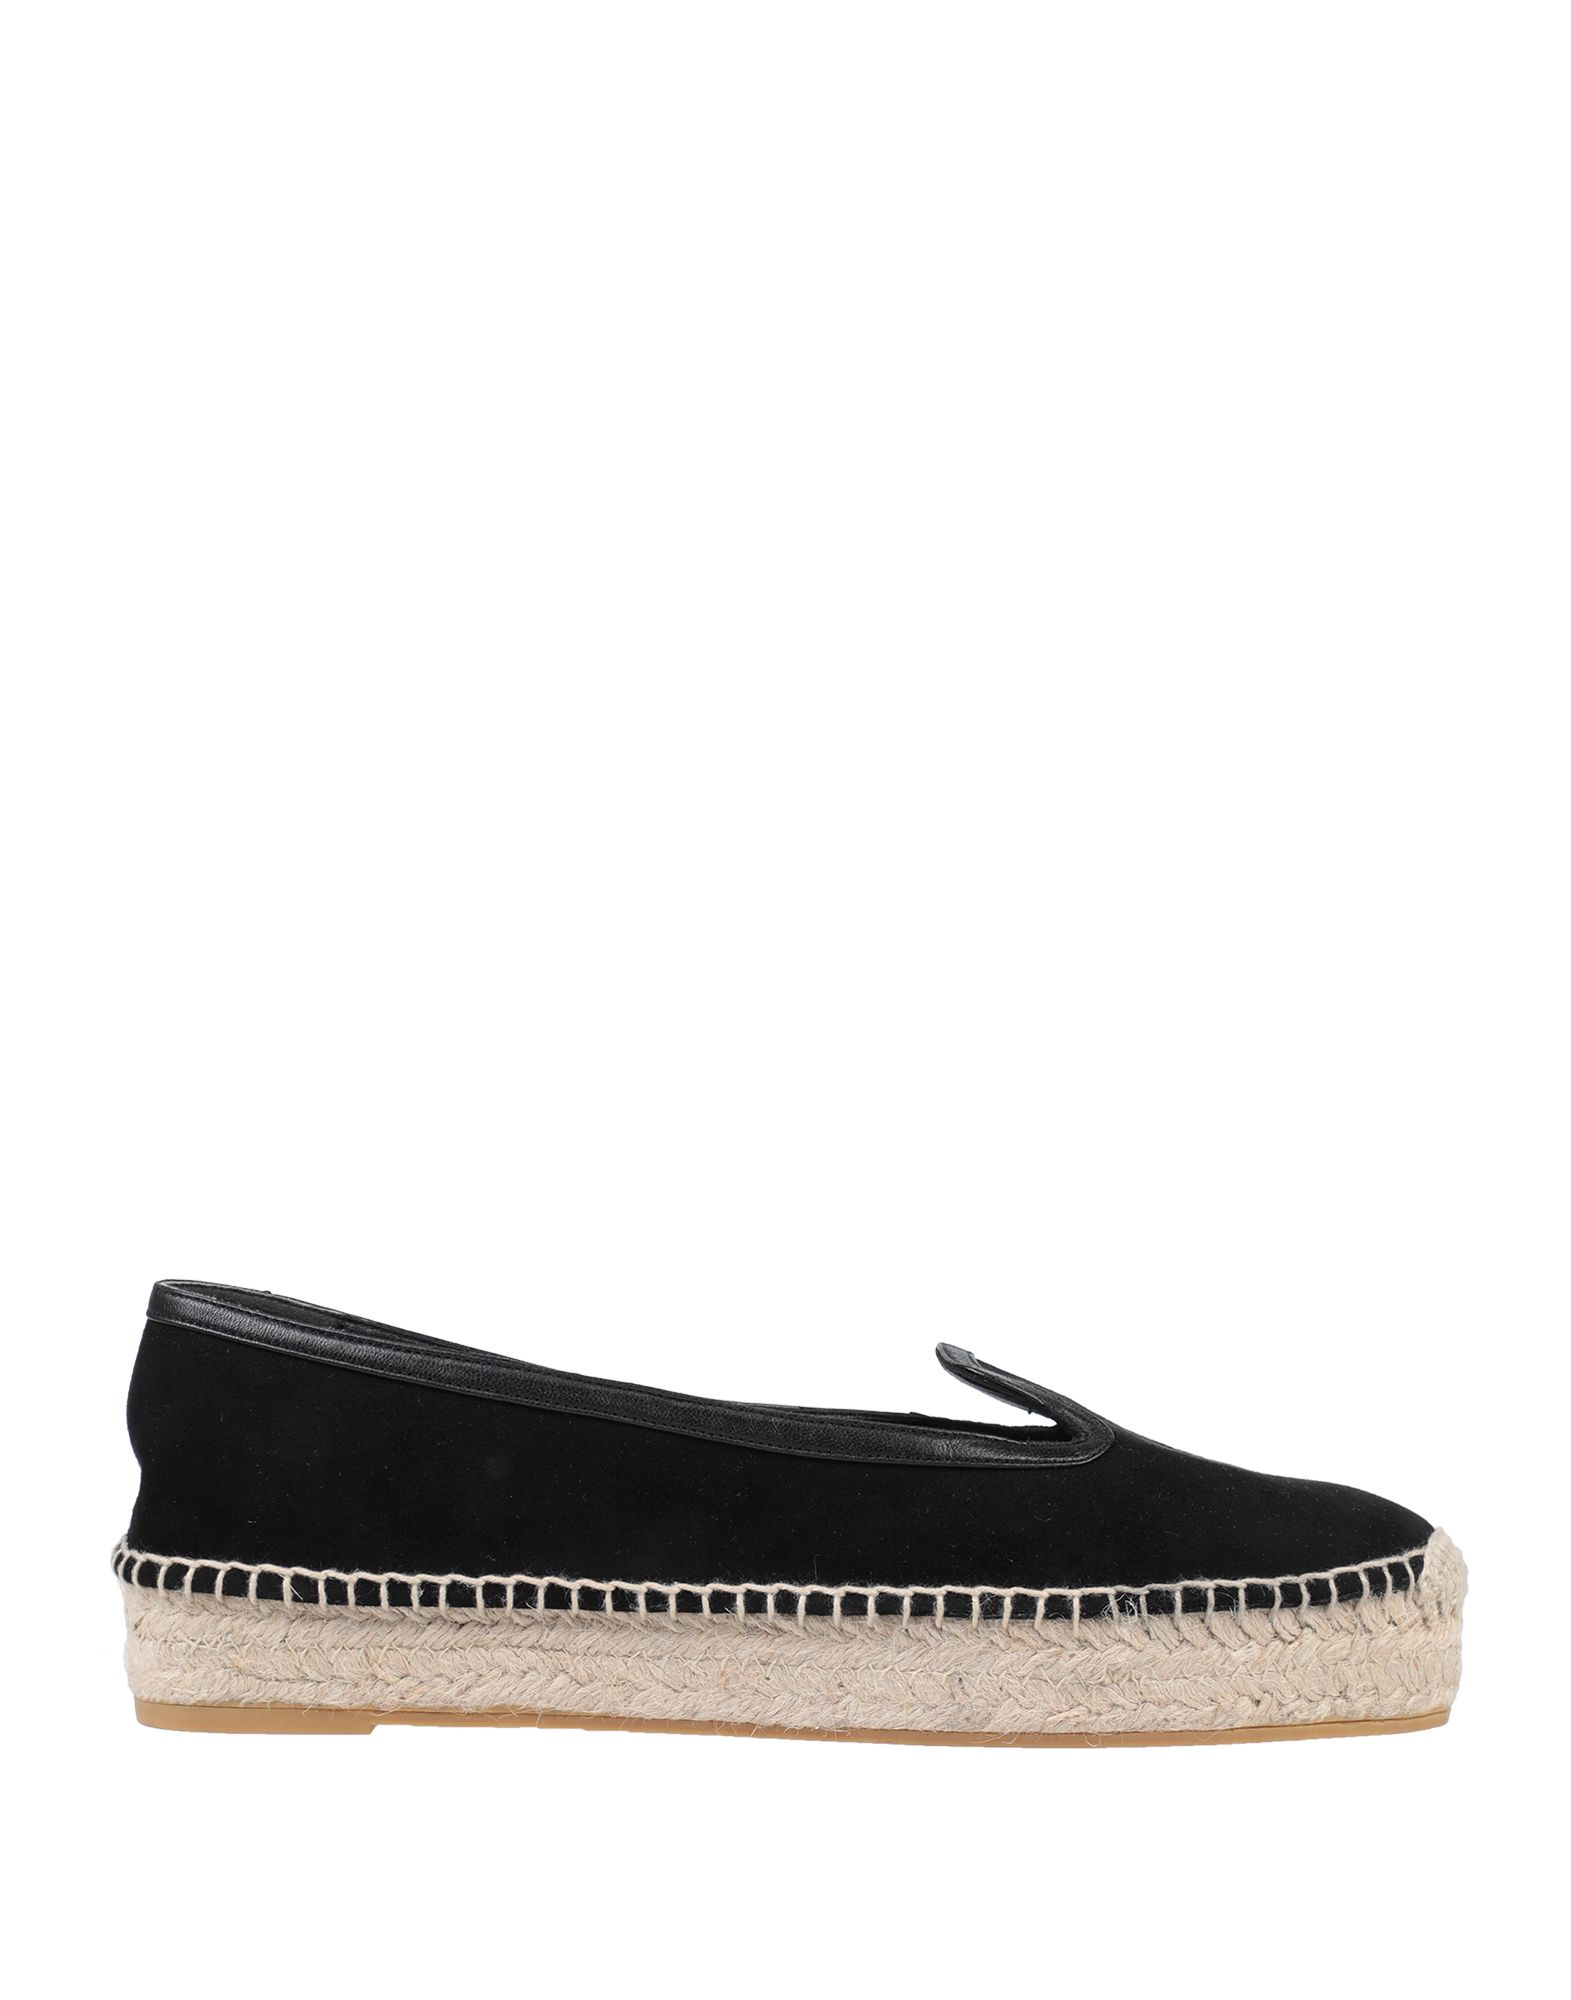 ALEXANDER MCQUEEN Espadrilles. nappa leather, no appliqués, solid color, round toeline, flat, leather lining, rubber sole, contains non-textile parts of animal origin. Soft Leather